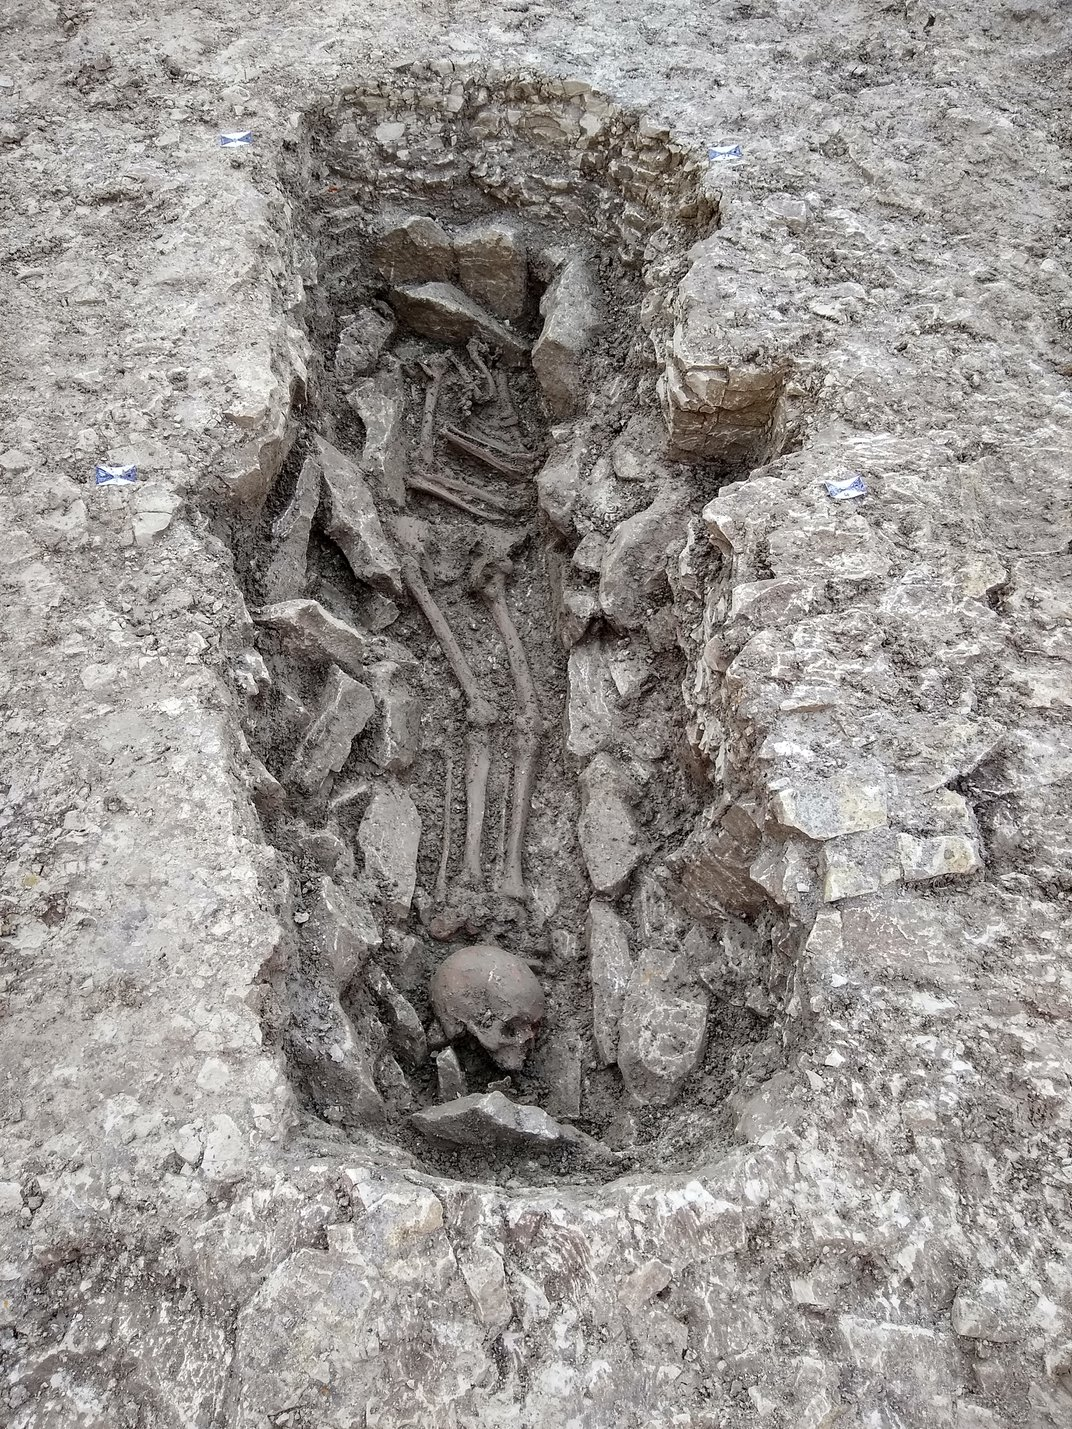 U.K. Construction Finds Neolithic Skeletons That May Have Been Victims of Human Sacrifice